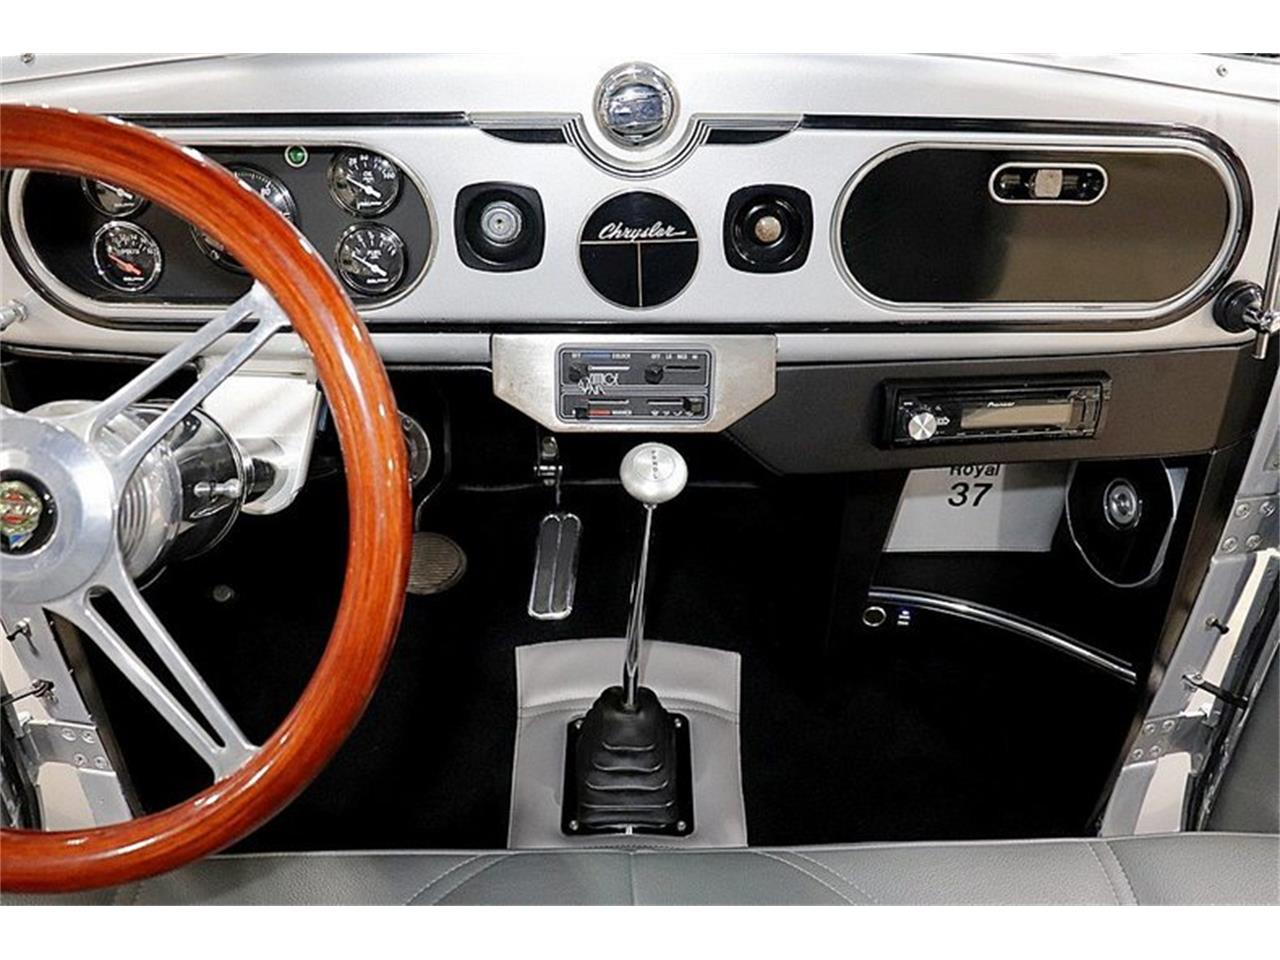 Large Picture of Classic '37 Chrysler Royal - $36,900.00 Offered by GR Auto Gallery - Q39G